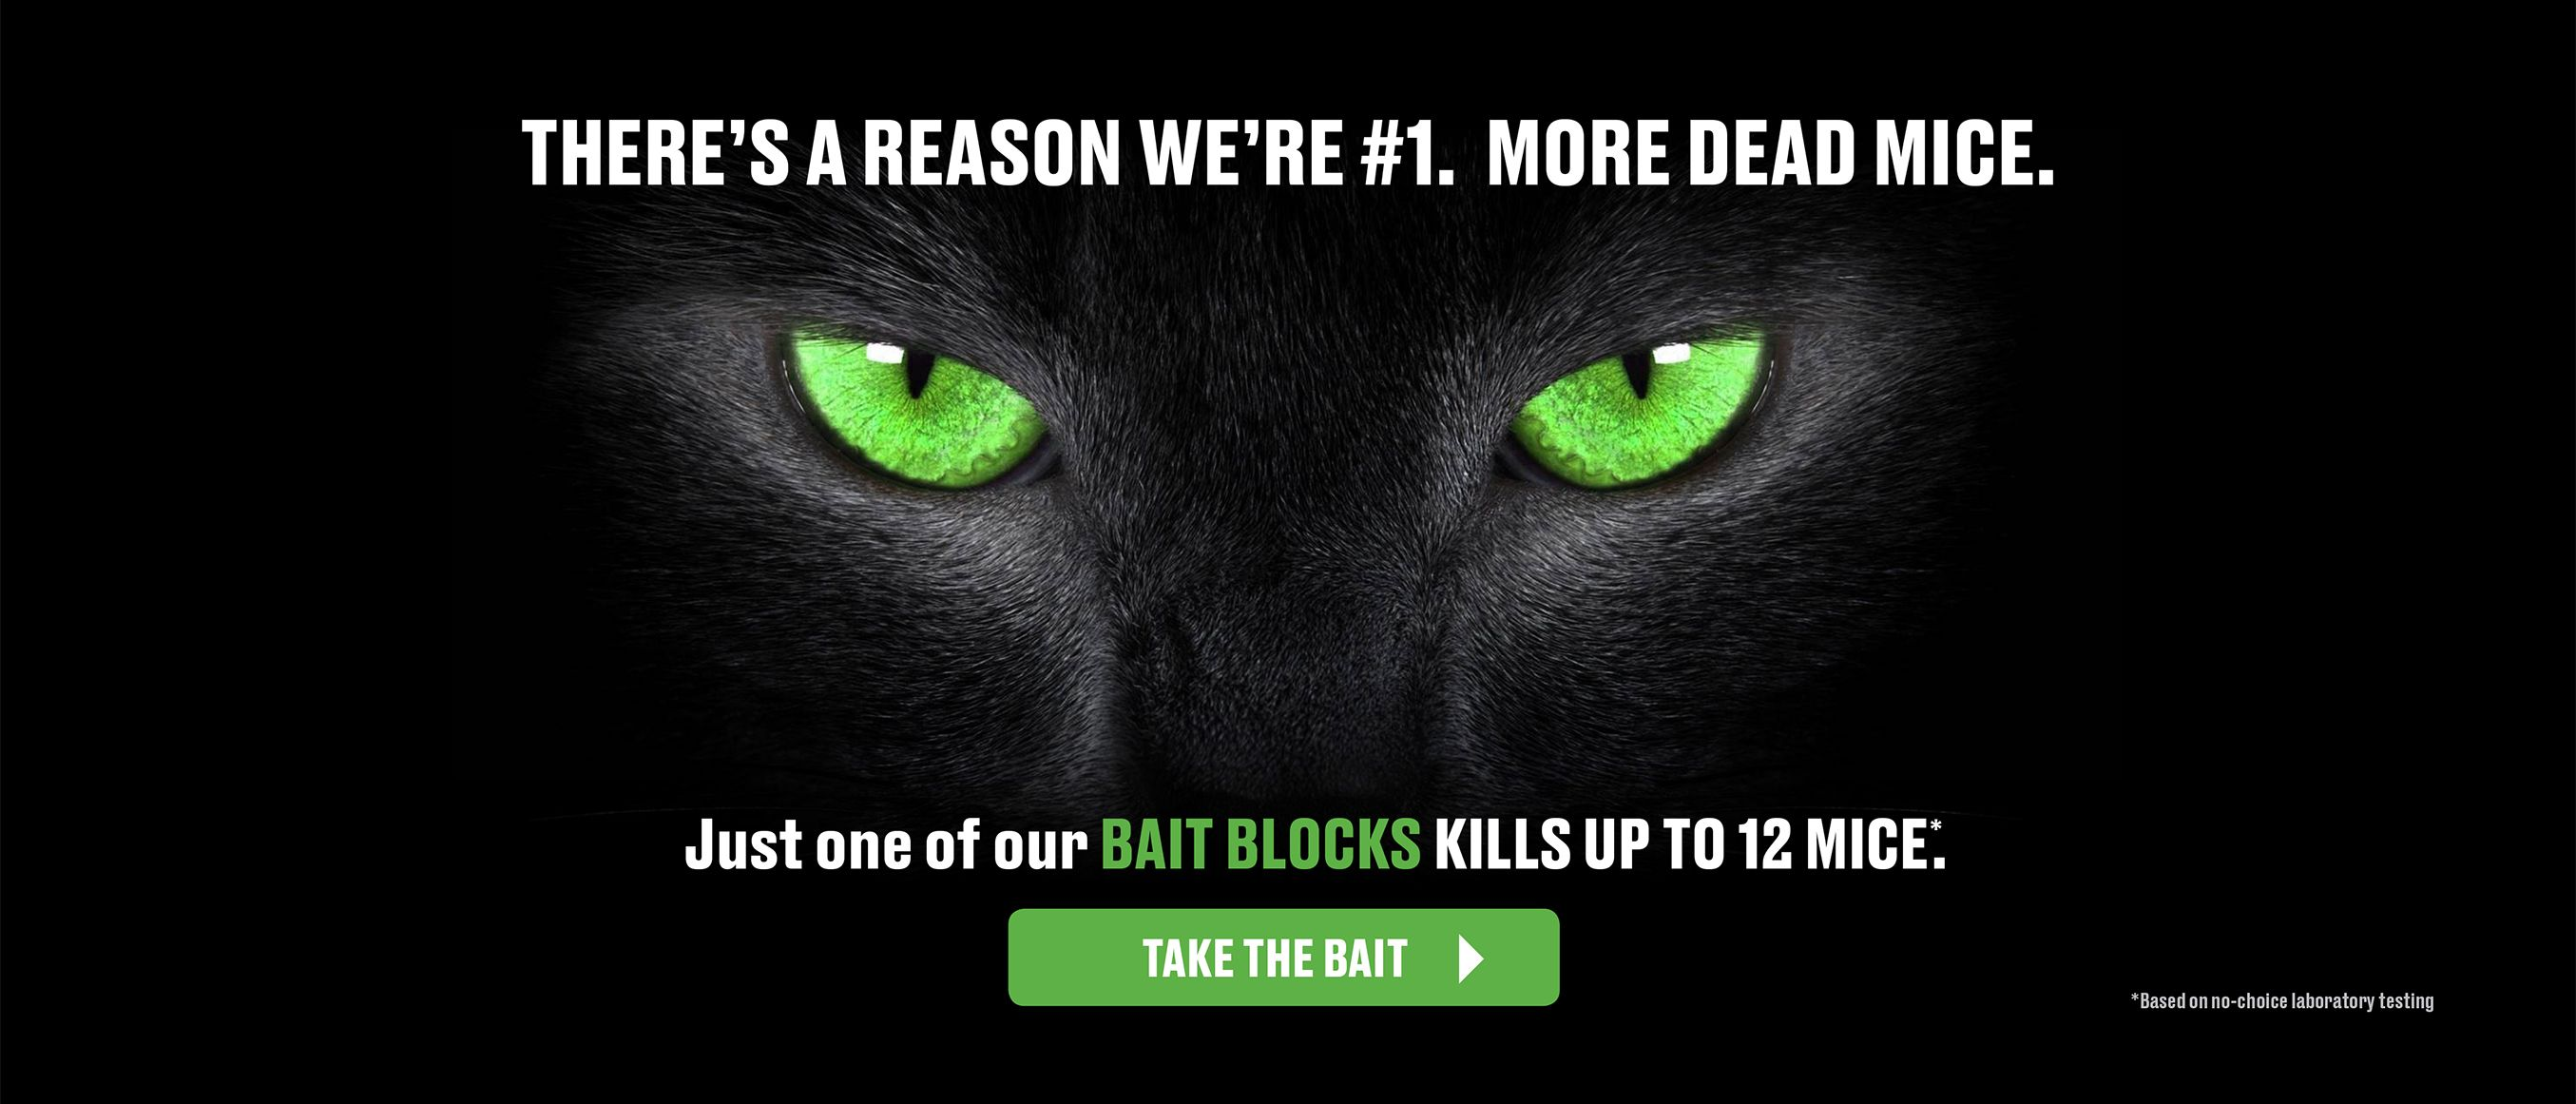 Theres a Reason we're number 1- more dead mice - just one of our bait blocks kills up to 12 mice - learn more